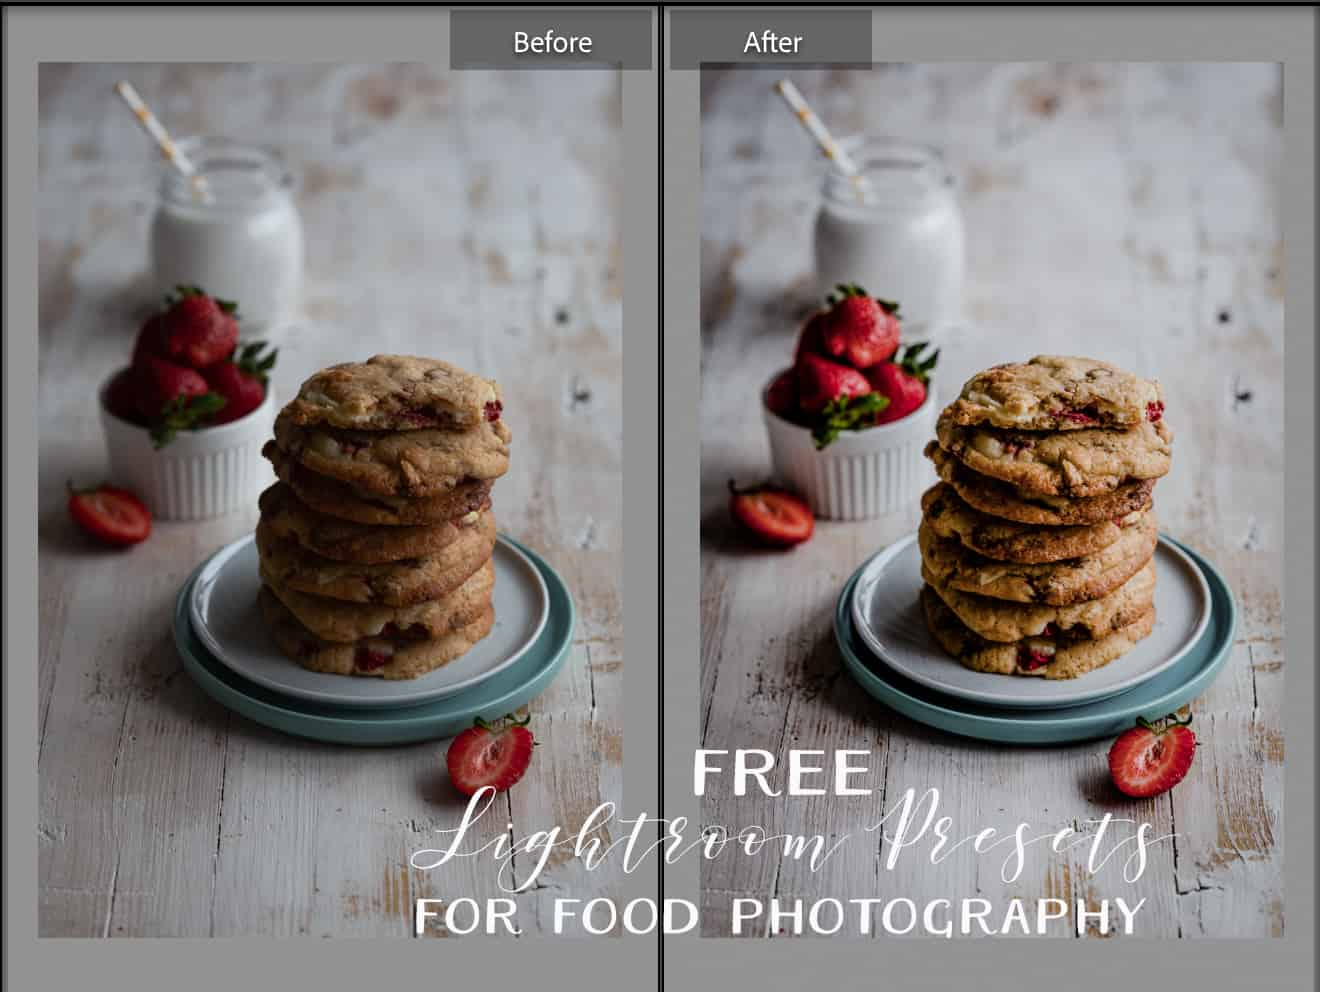 before and after a photo of cookies from lightroom